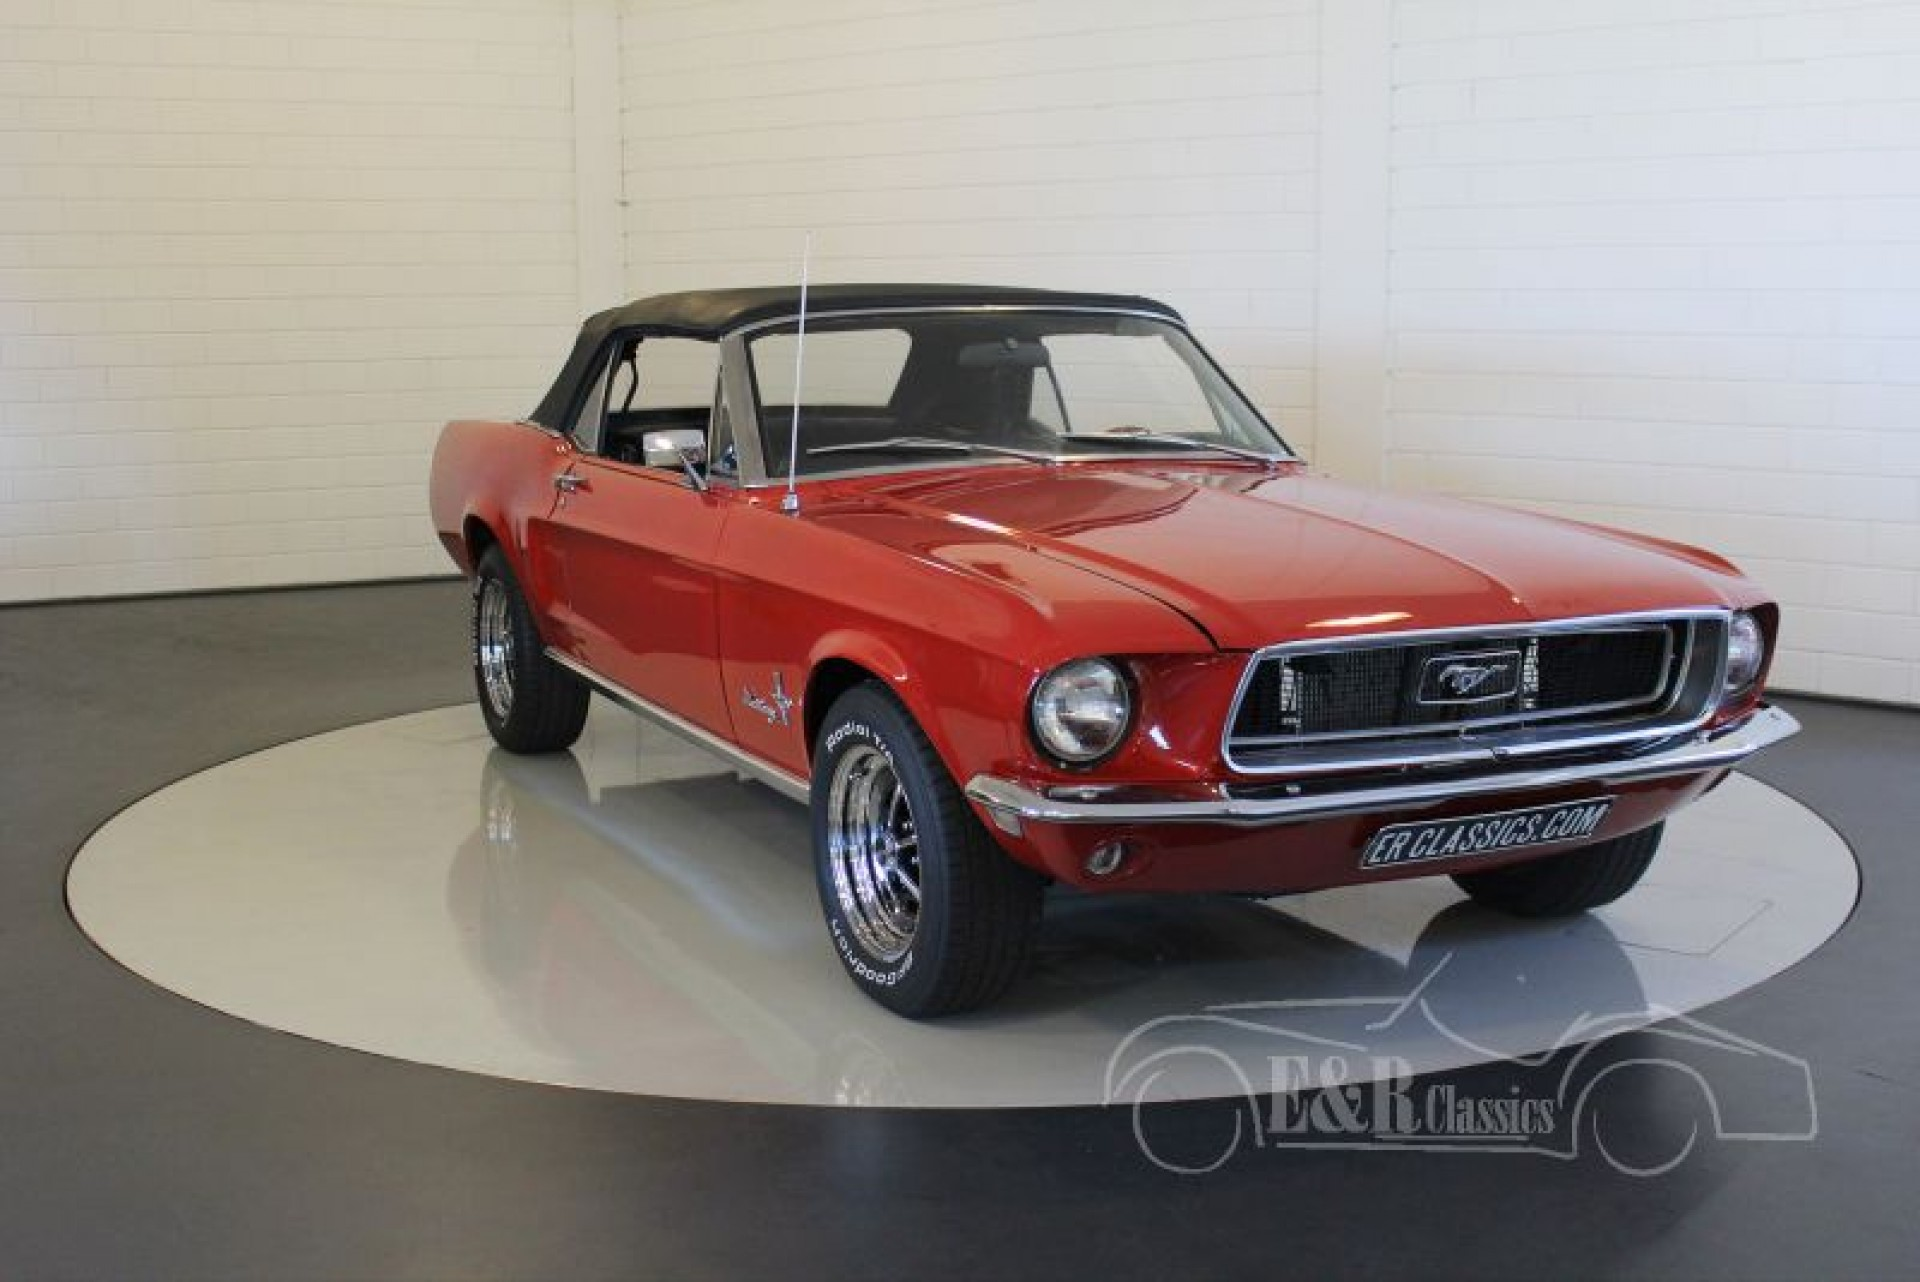 ford mustang convertible 1968 vendre erclassics. Black Bedroom Furniture Sets. Home Design Ideas